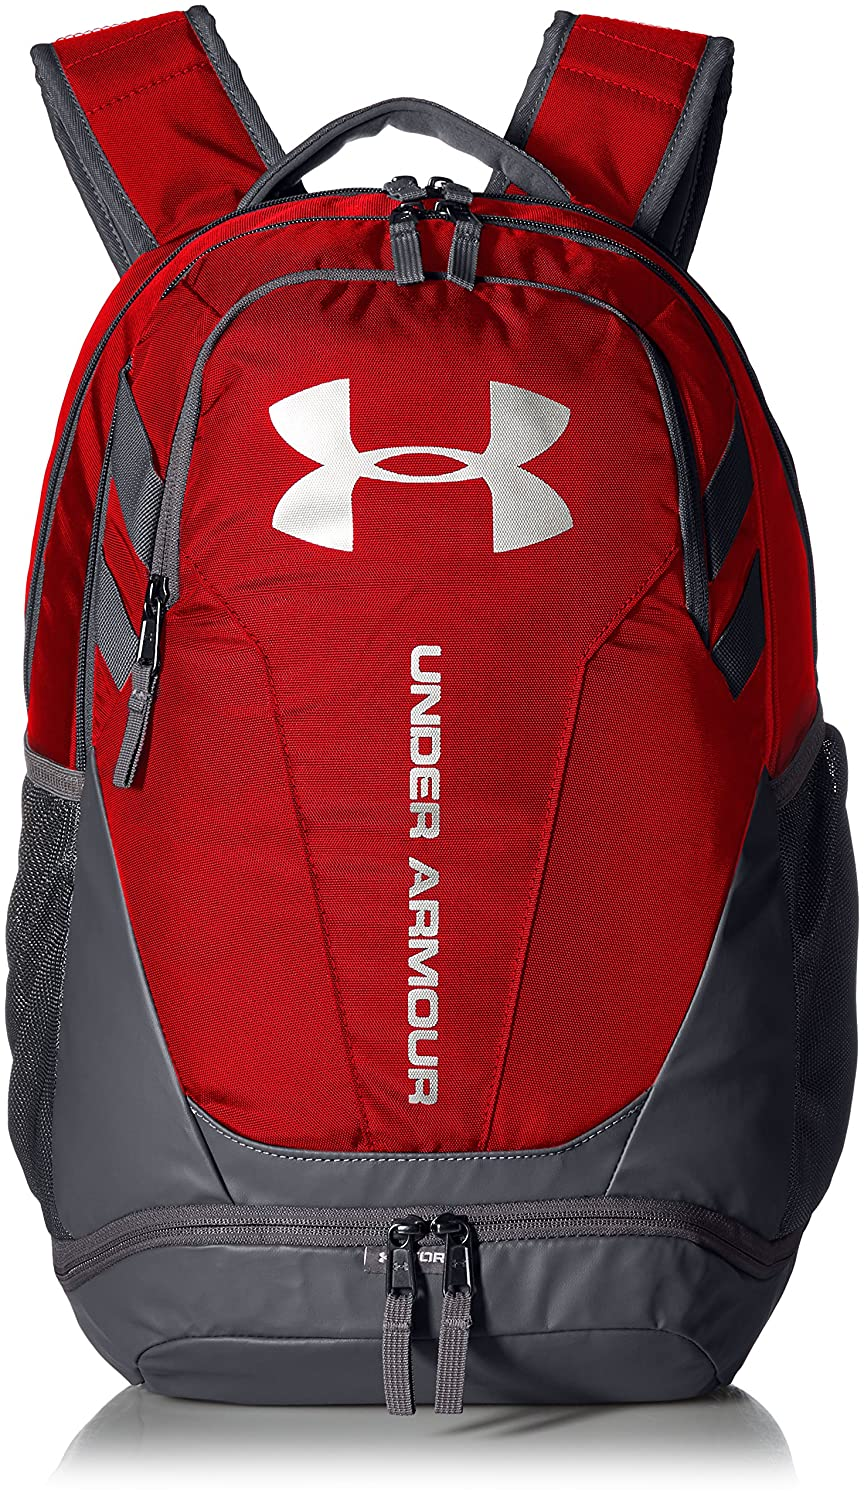 Under Armour Hustle 3.0 Under Armour Bags 1294720